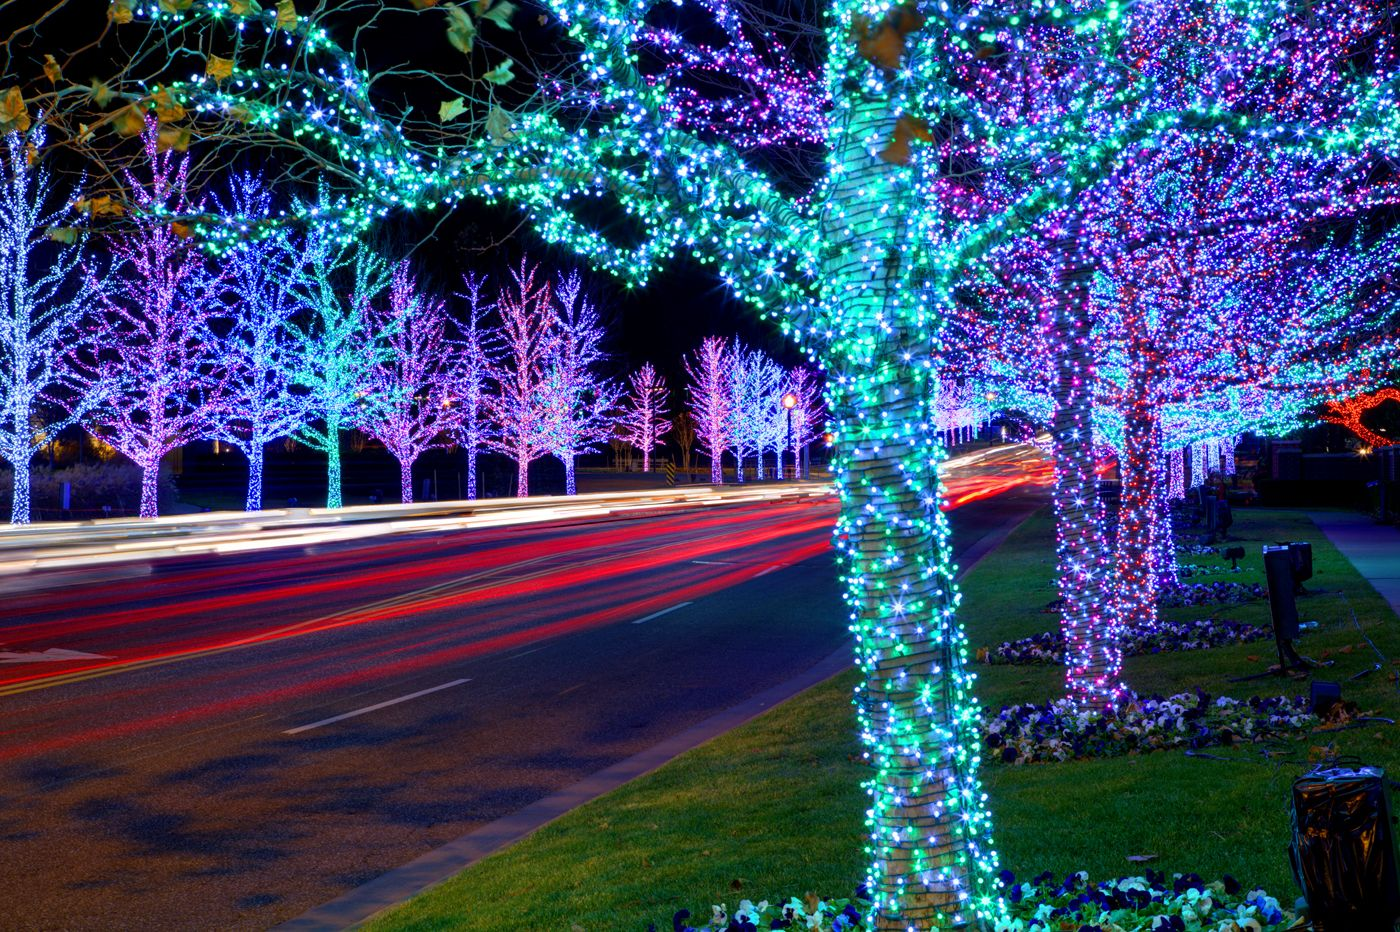 Chesapeake has some AMAZING xmas lights for sure